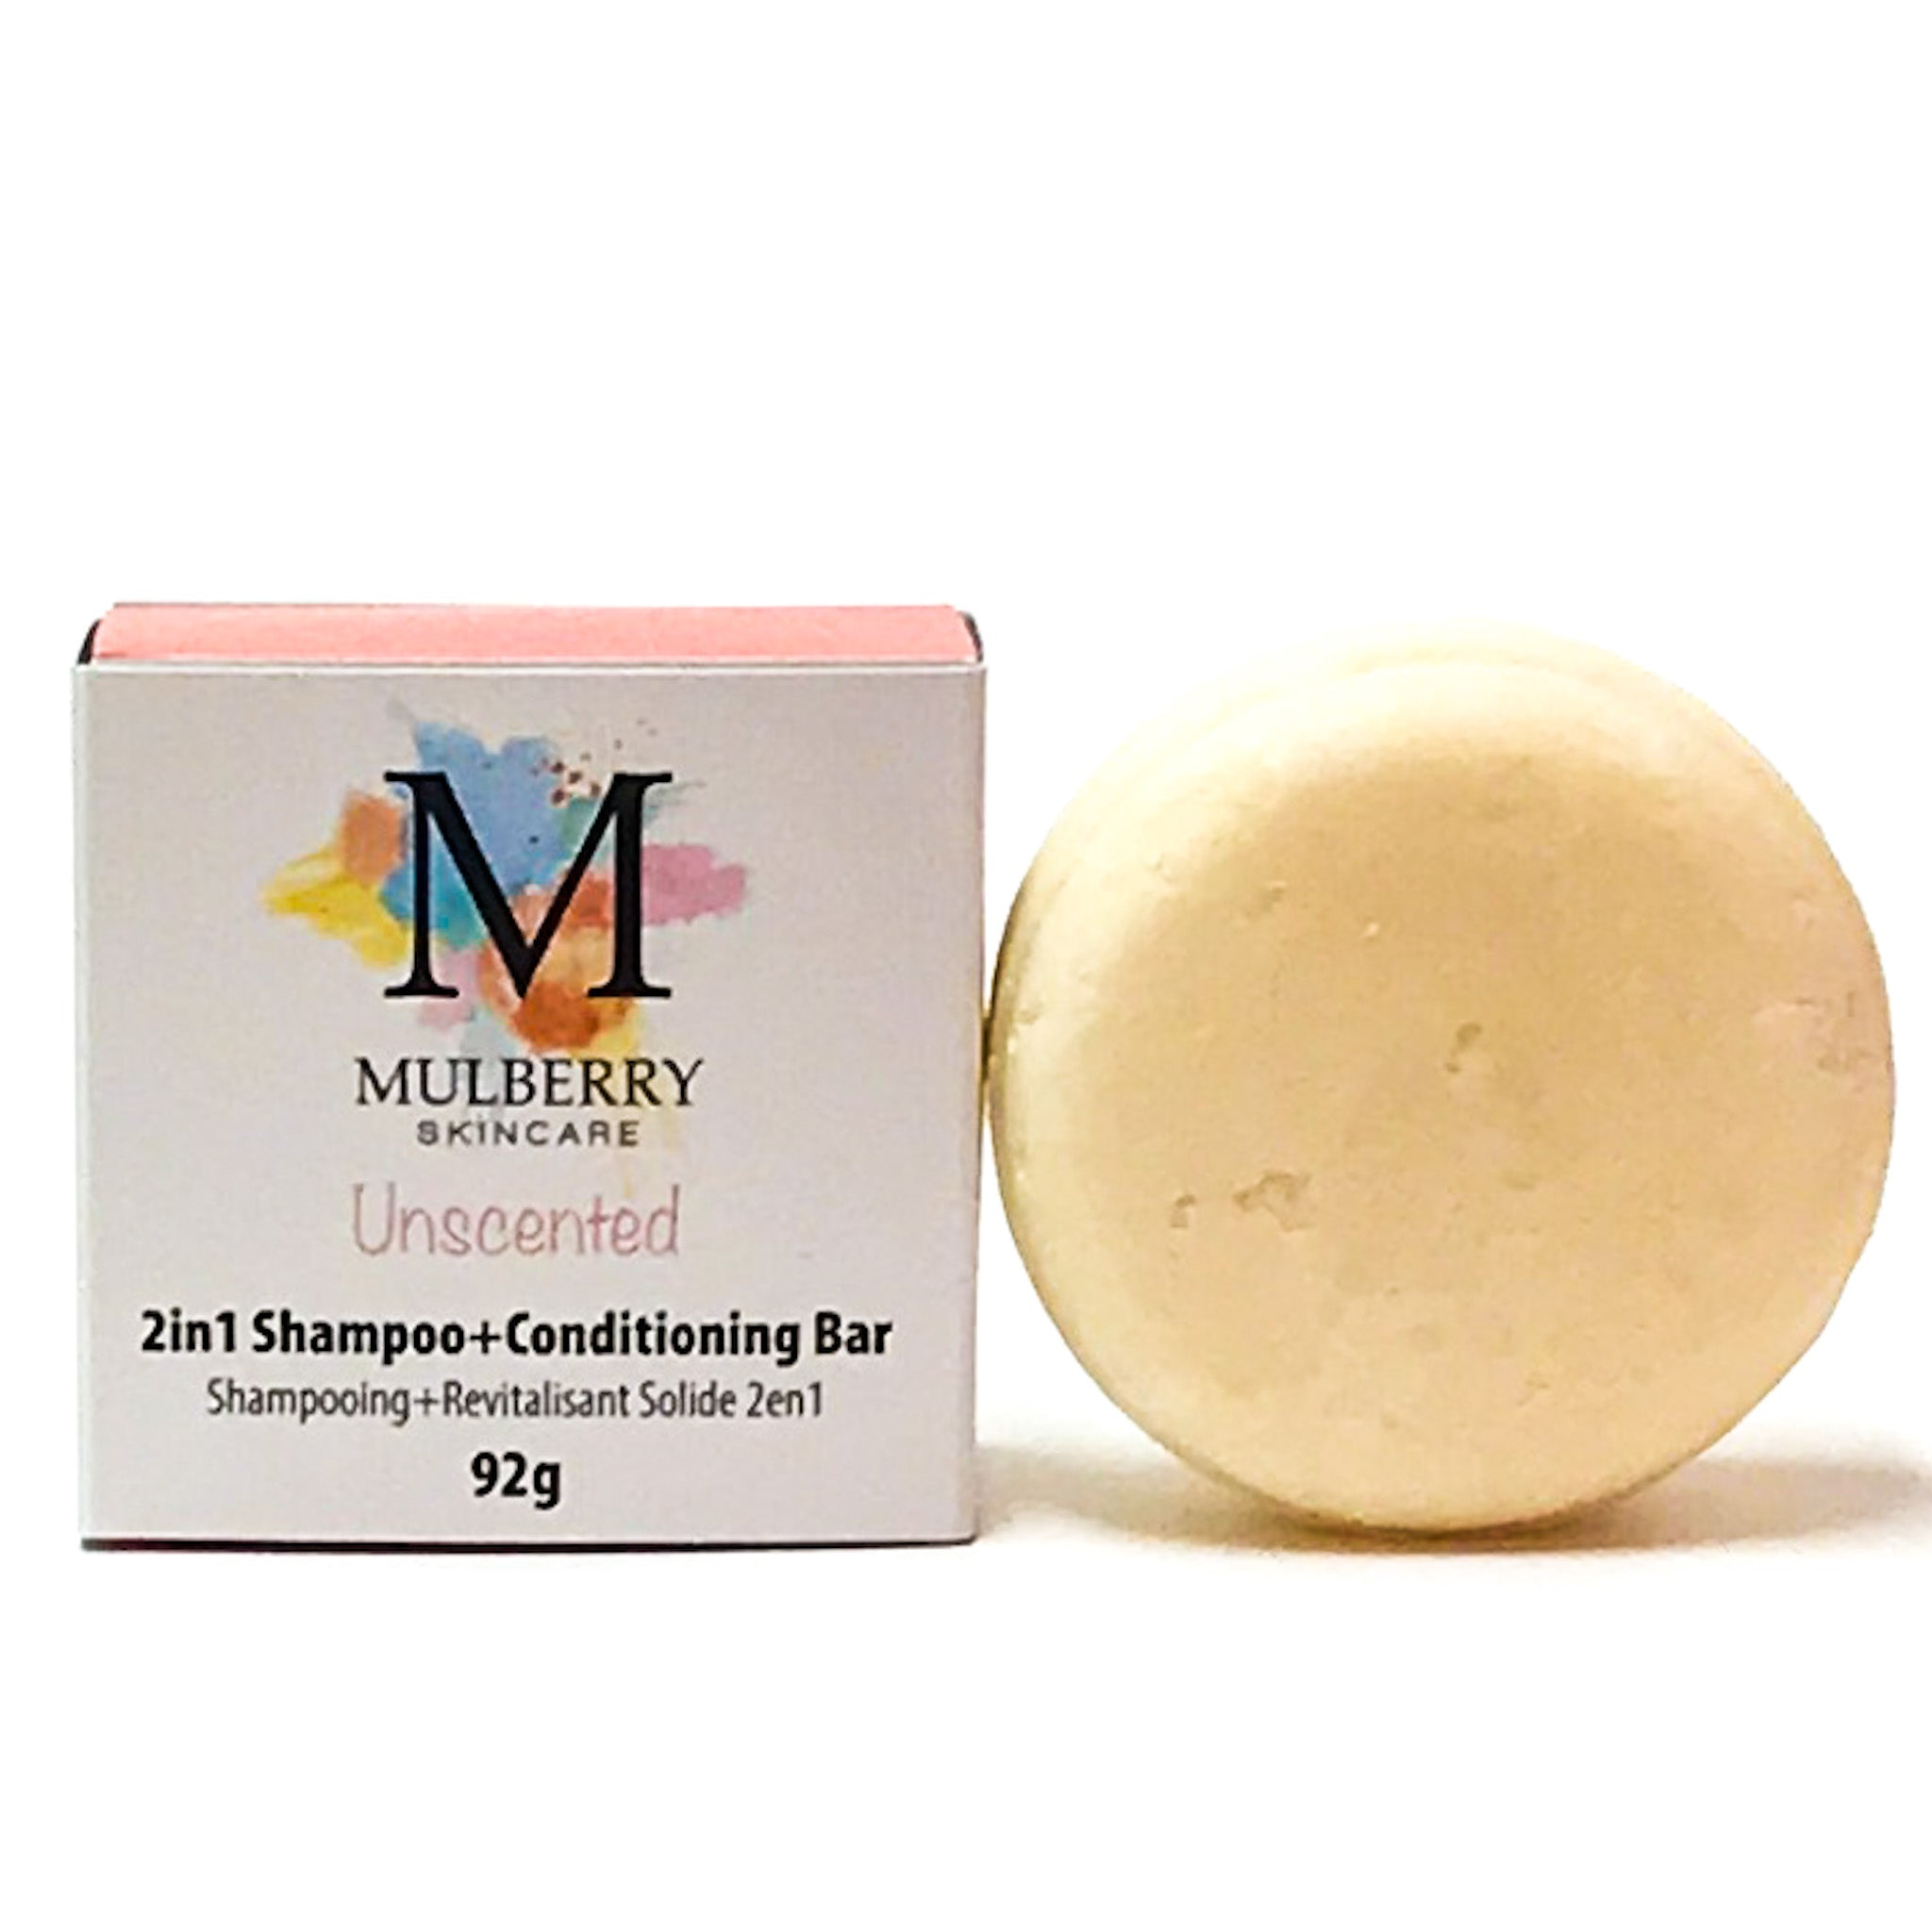 2-in-1 solid shampoo + conditioner bar | unscented